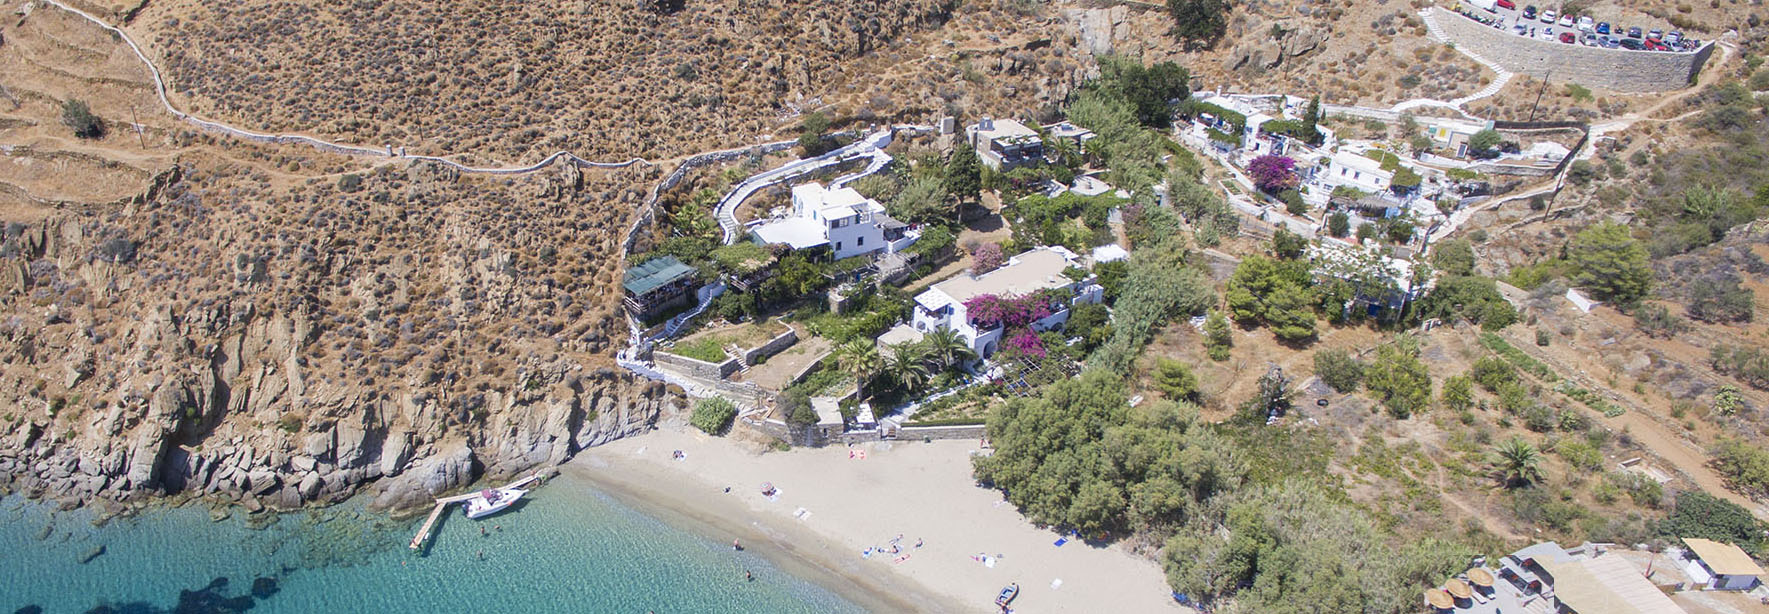 Location Levrossos Beach Apartments on Amorgos